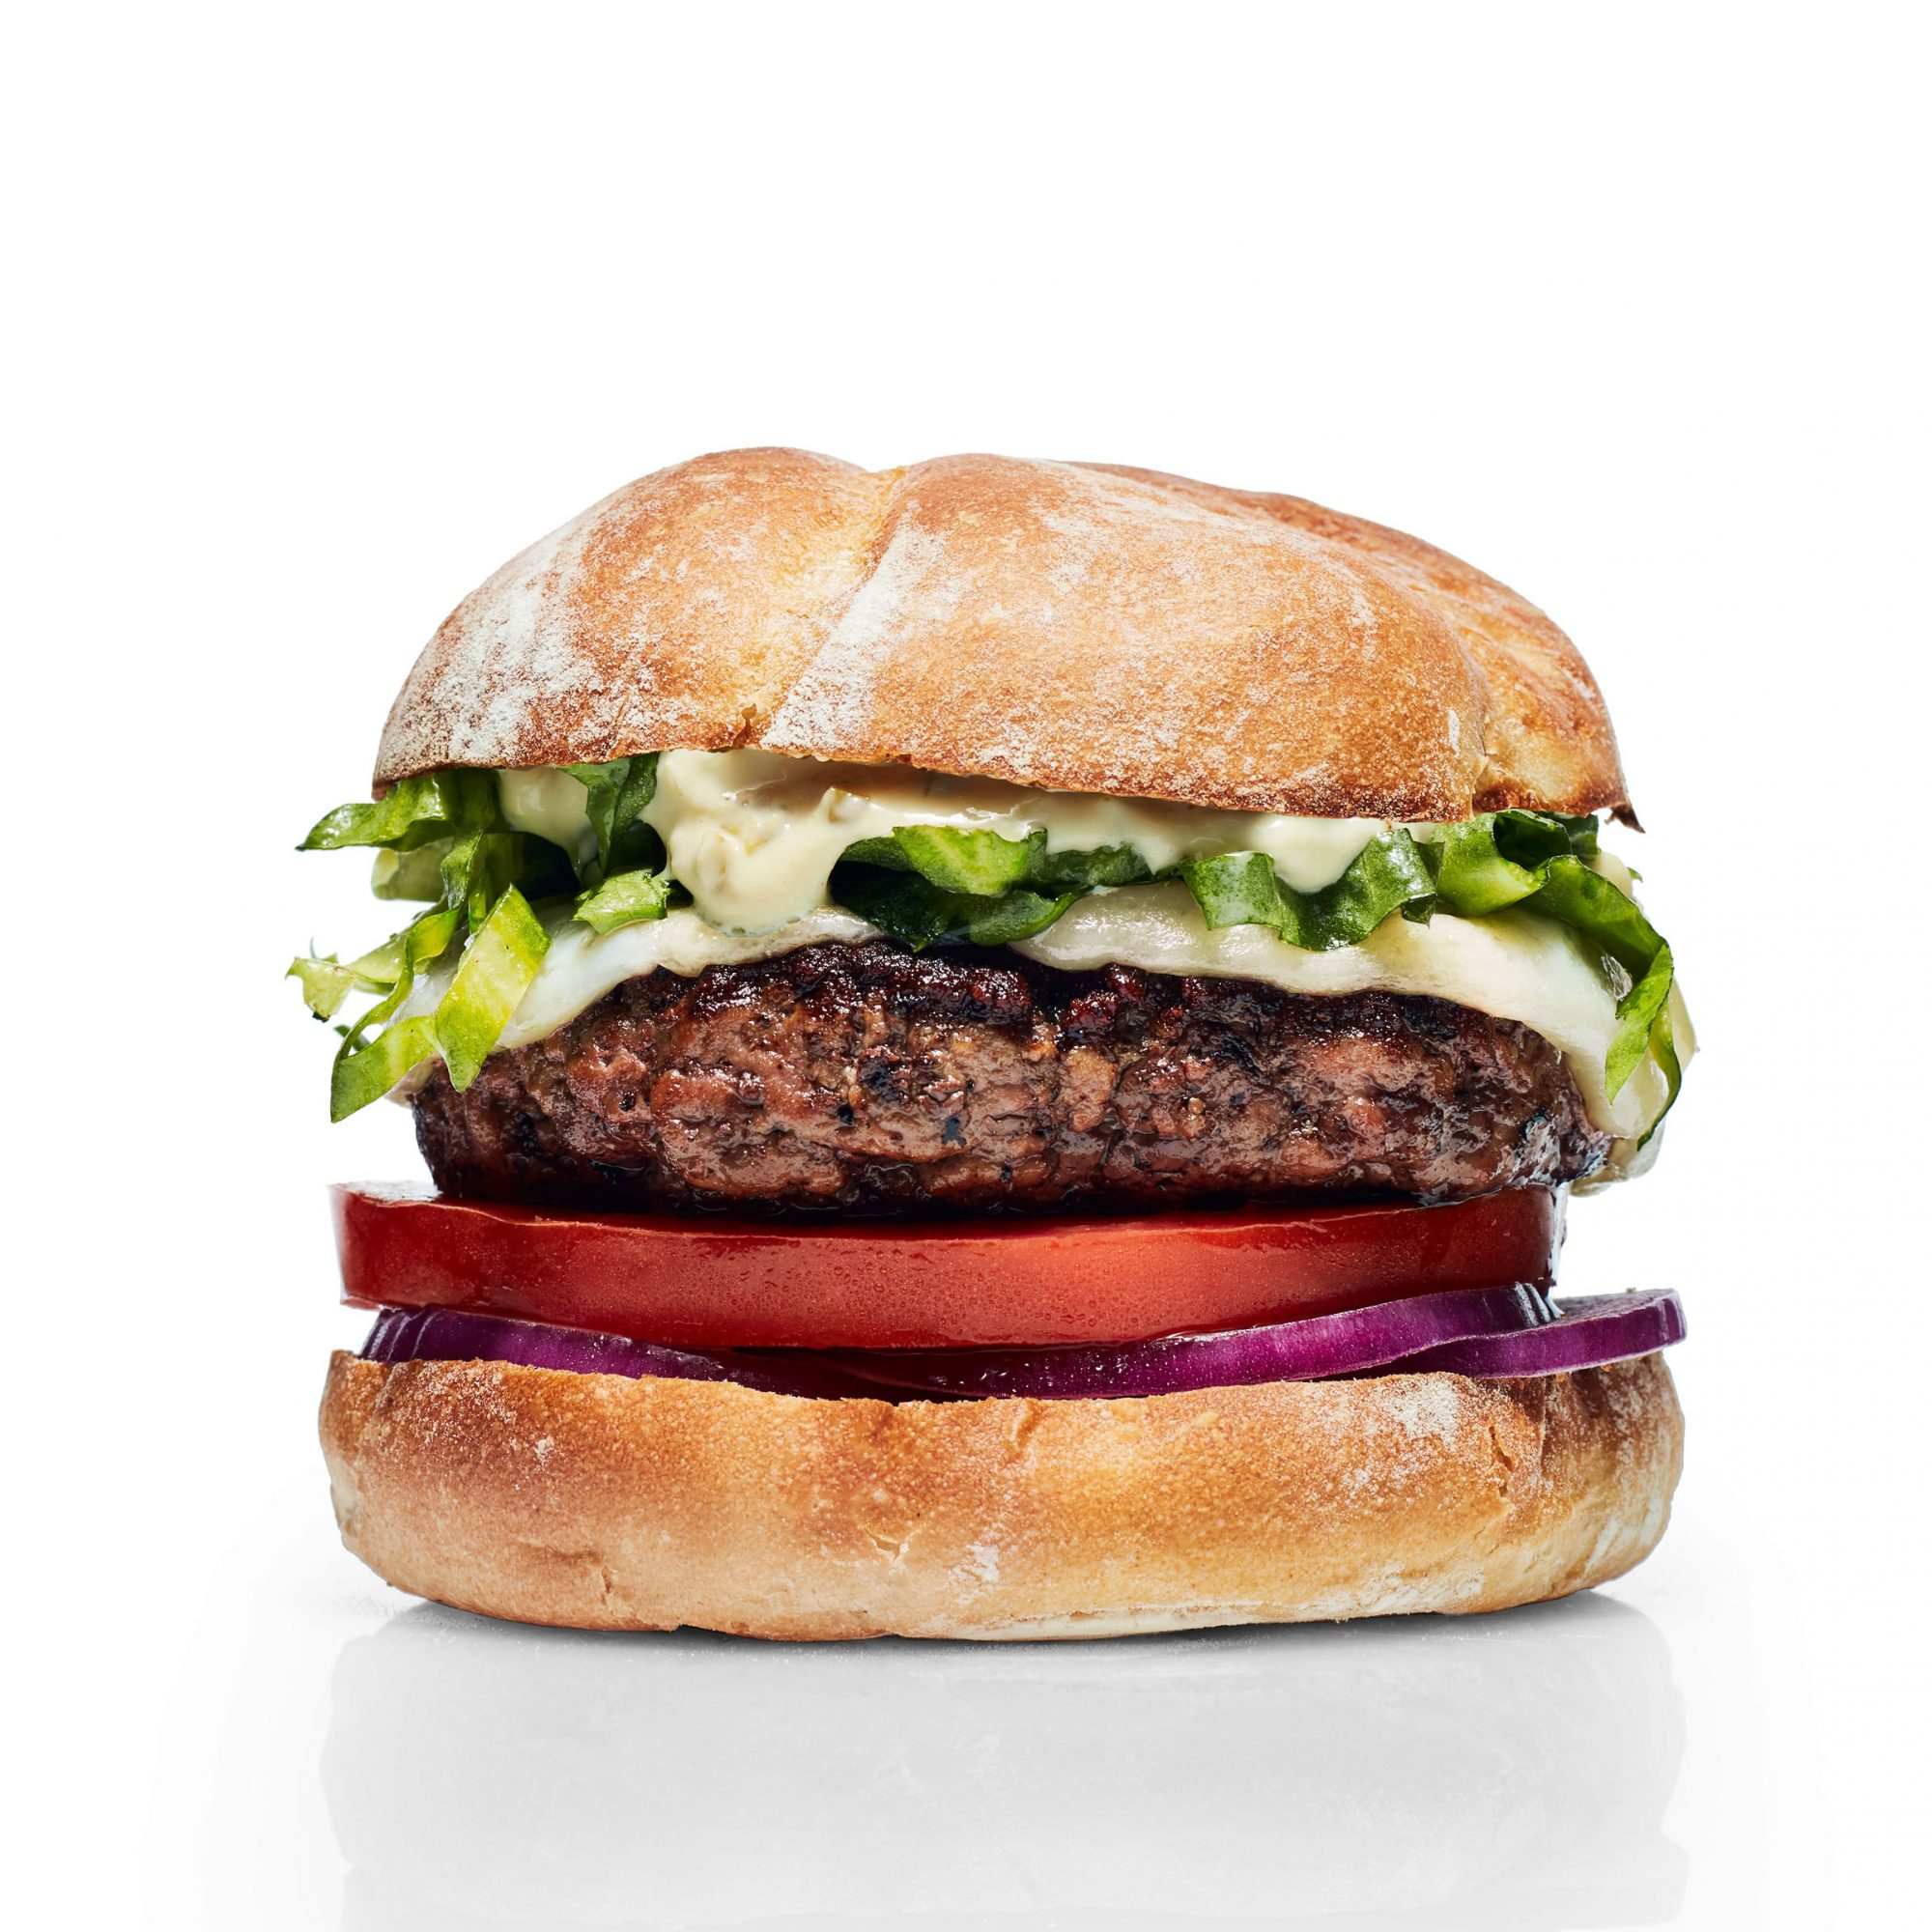 Tuscan-Style Steak Burgers with Garlicky Aioli